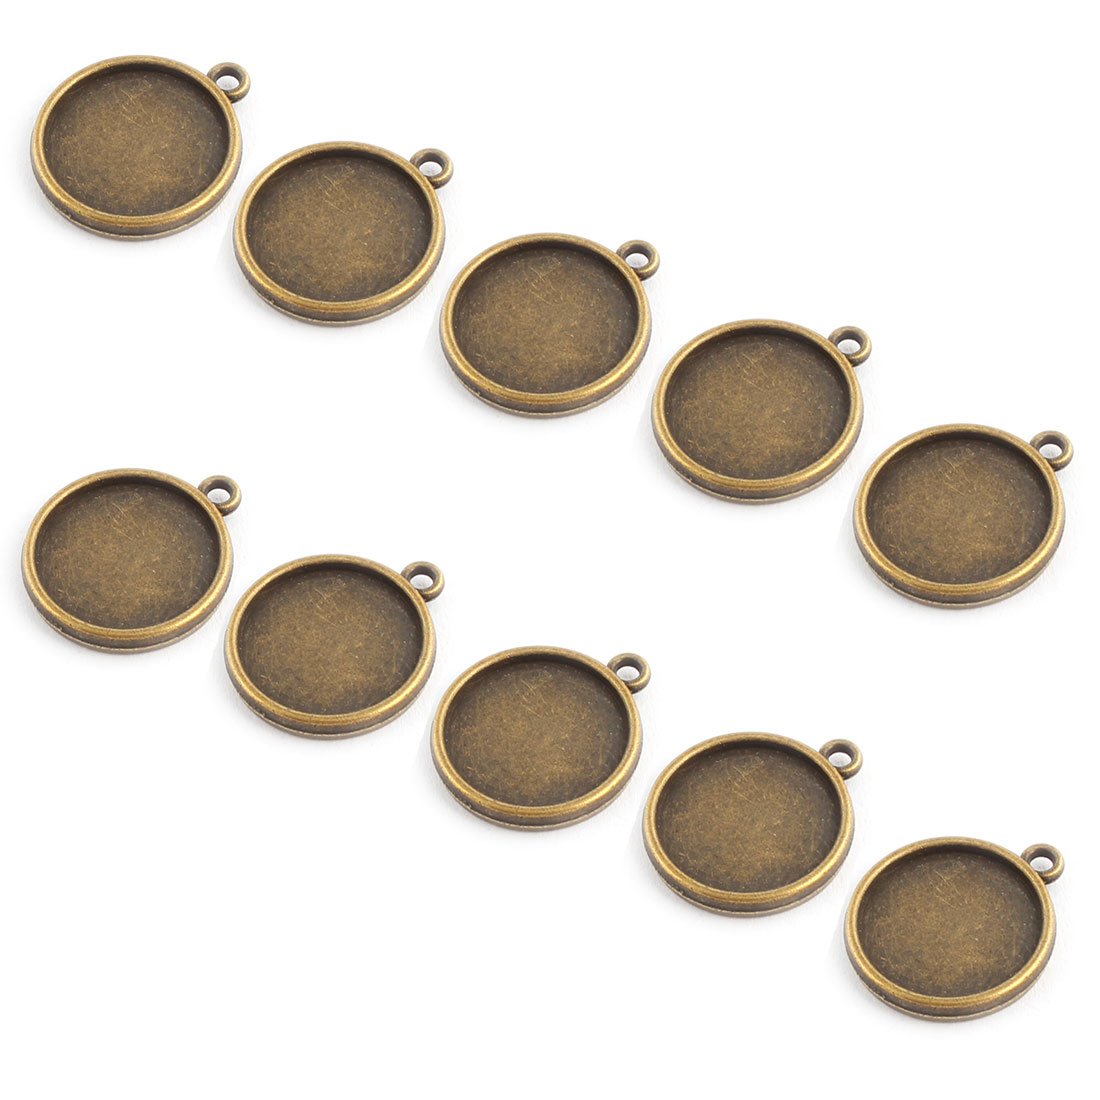 Household Copper Alloy DIY Double Sided Round Pendant Trays Bronze Tone 16mm Inner Dia 10 Pcs